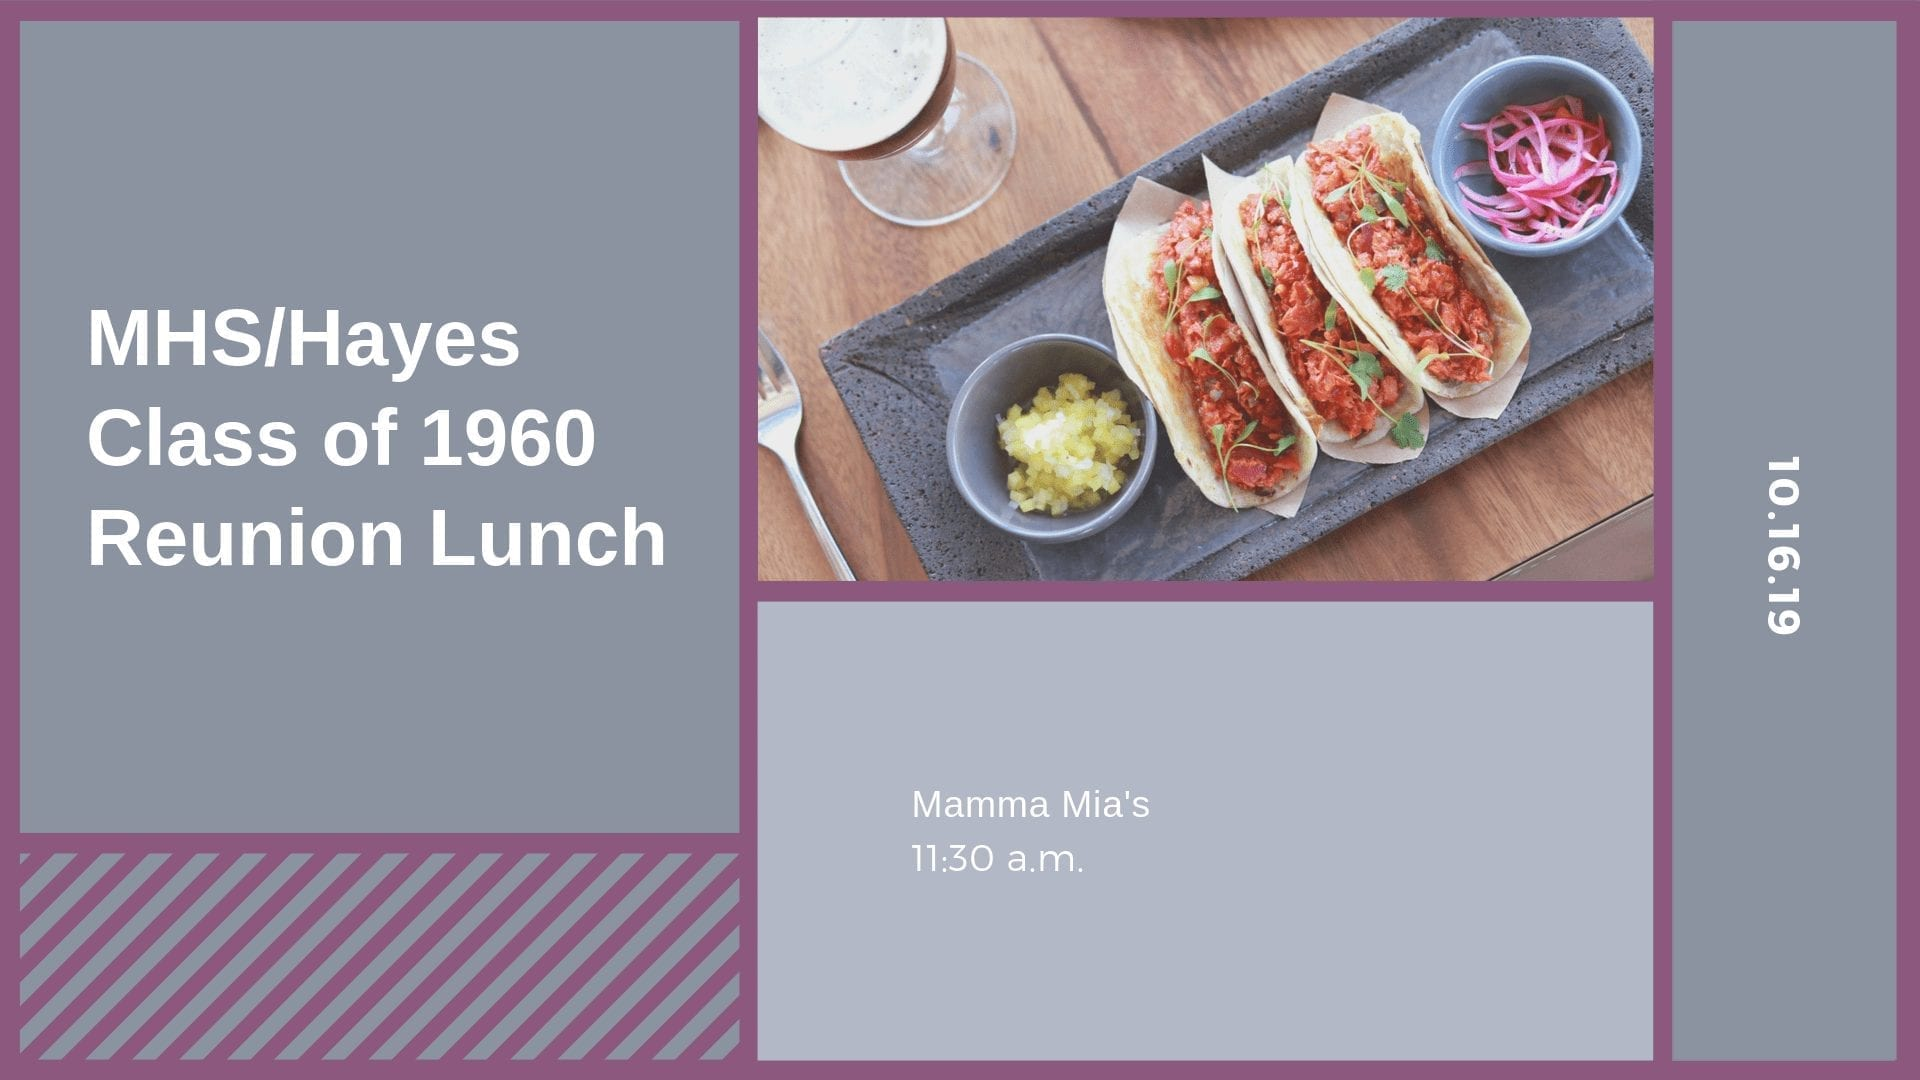 MHS/Hayes Class of 1960 Reunion Lunch